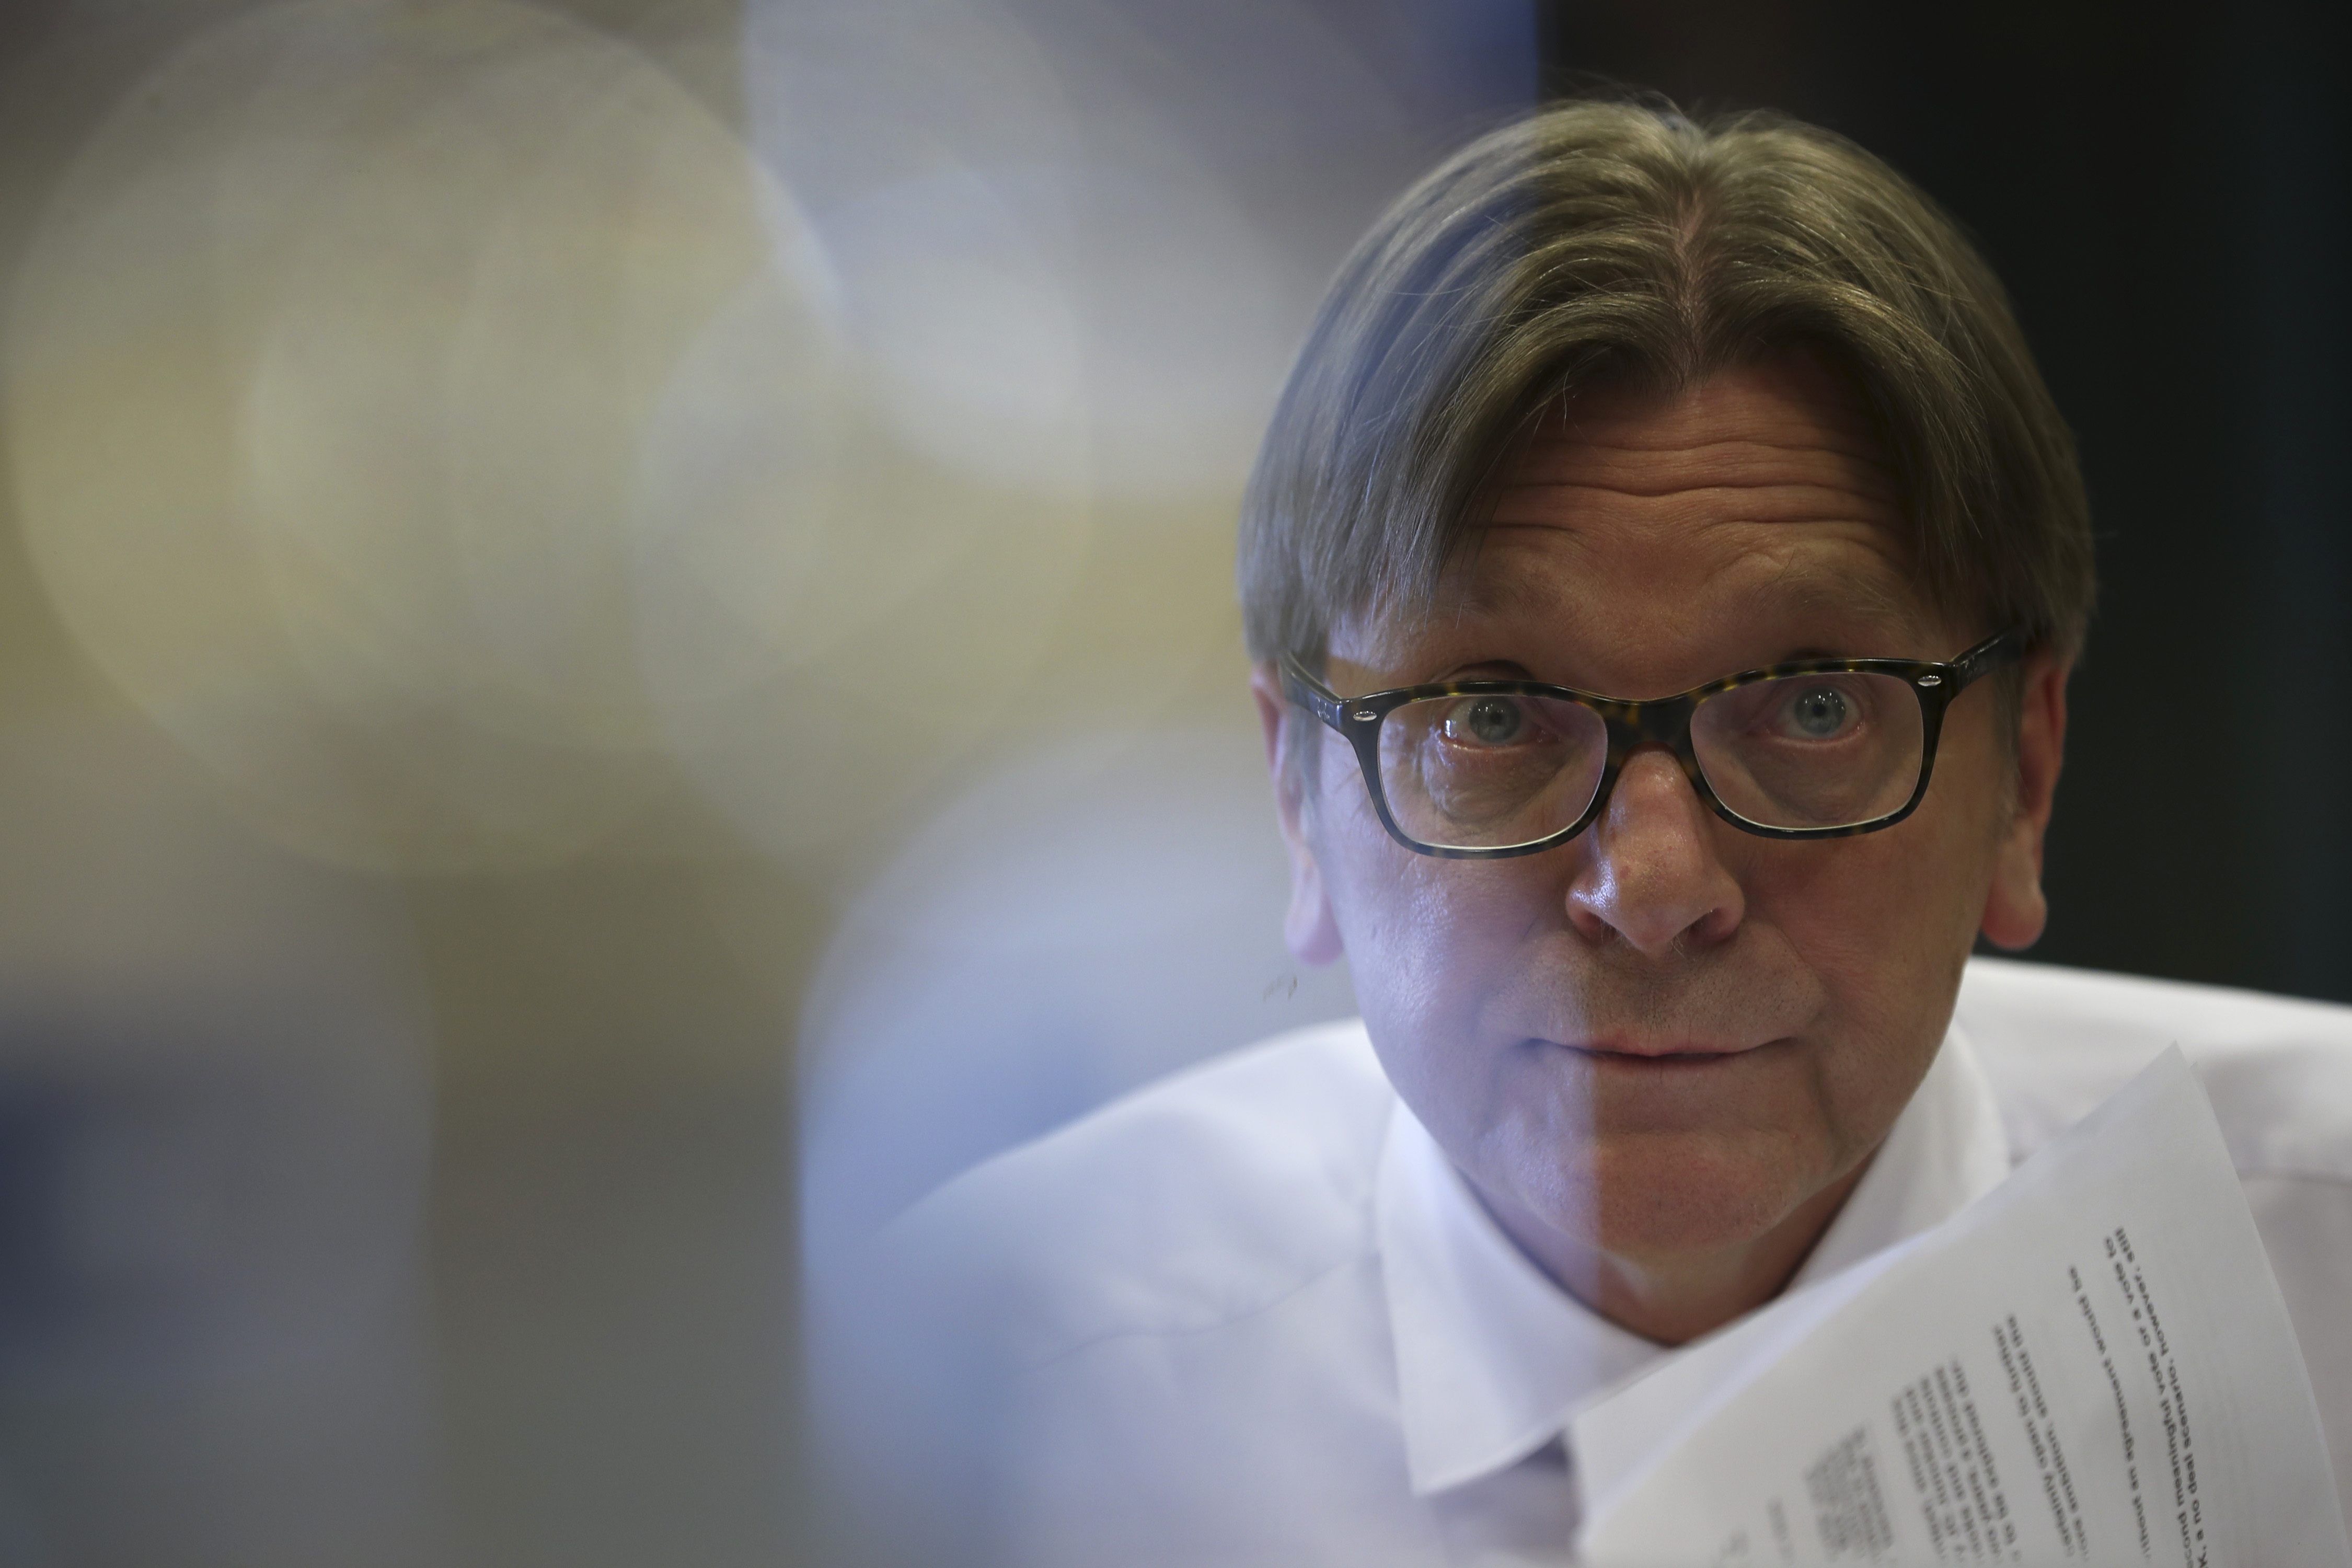 The European Parliament's top Brexit official Guy Verhofstadt pauses, as he talks during a debate about Britain's Brexit split from the EU at the European Parliament in Brussels, Thursday, March 7, 2019. Verhofstadt says he does not want a long extension of the Brexit departure date and not one that would go beyond the May elections for the legislators. (AP Photo/Francisco Seco)